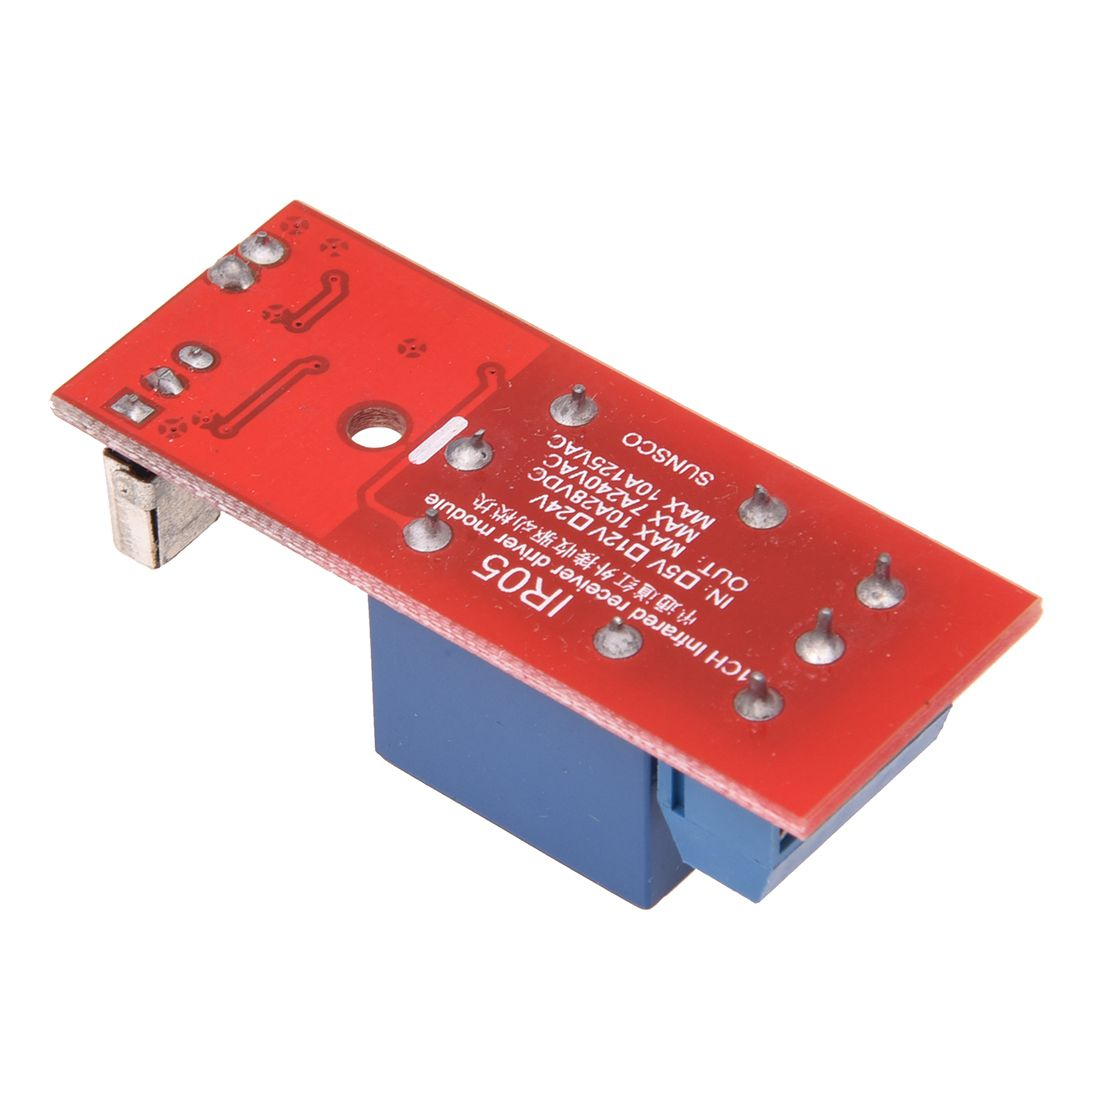 Relay Module 1 Channel Remote Control Switch Wireless Ir 12v Dc G9f3 Infrared Transmitter Circuit Payment